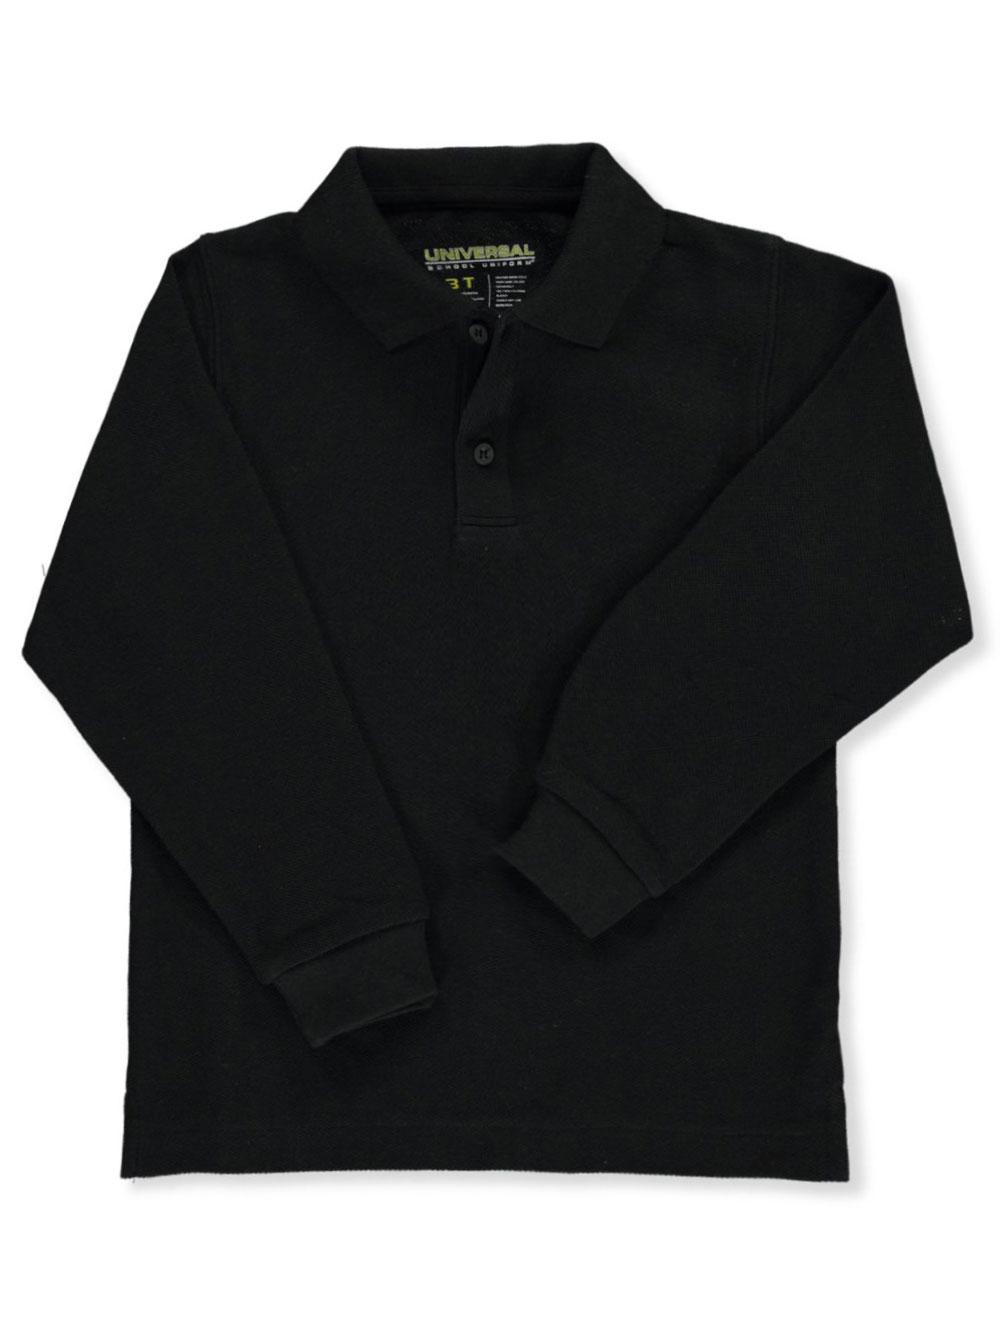 Unisex l and s Pique Polo